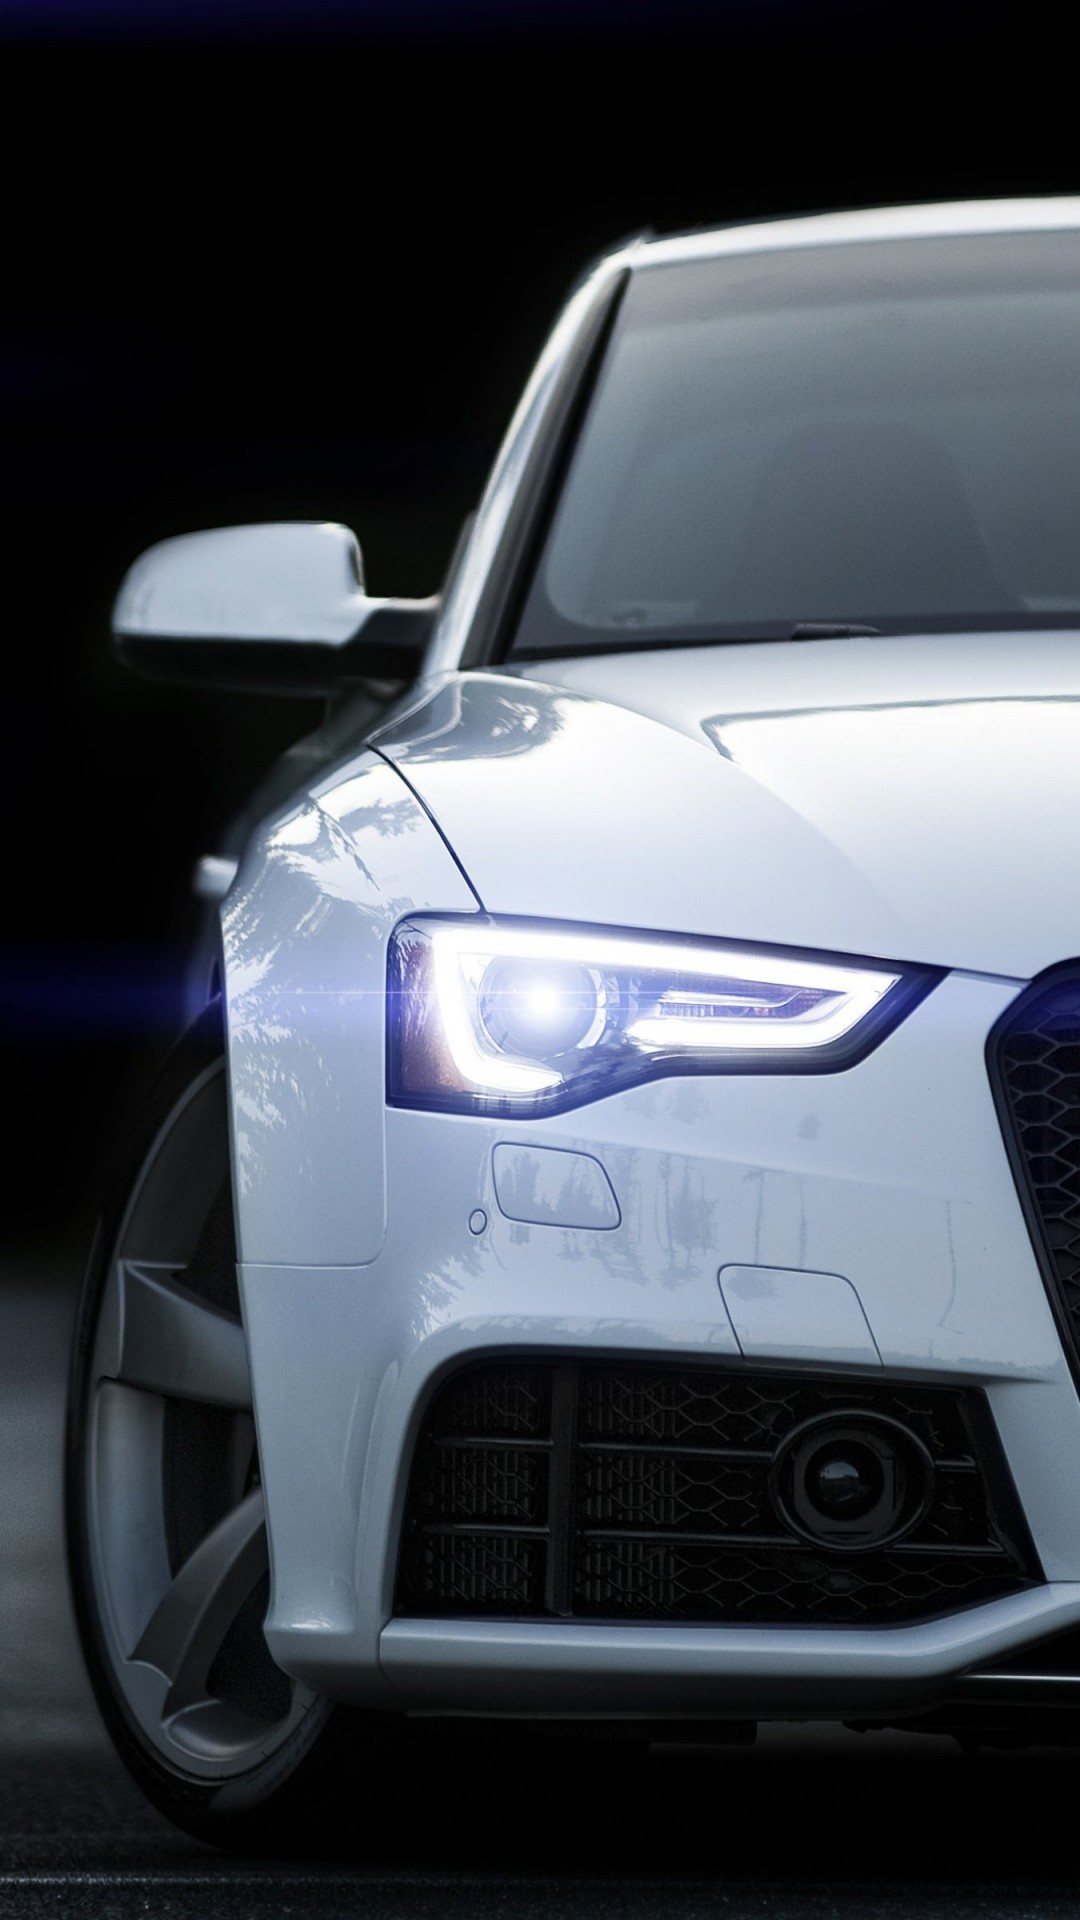 2015 Audi RS 5 Coupe Wallpaper for SAMSUNG Galaxy S5